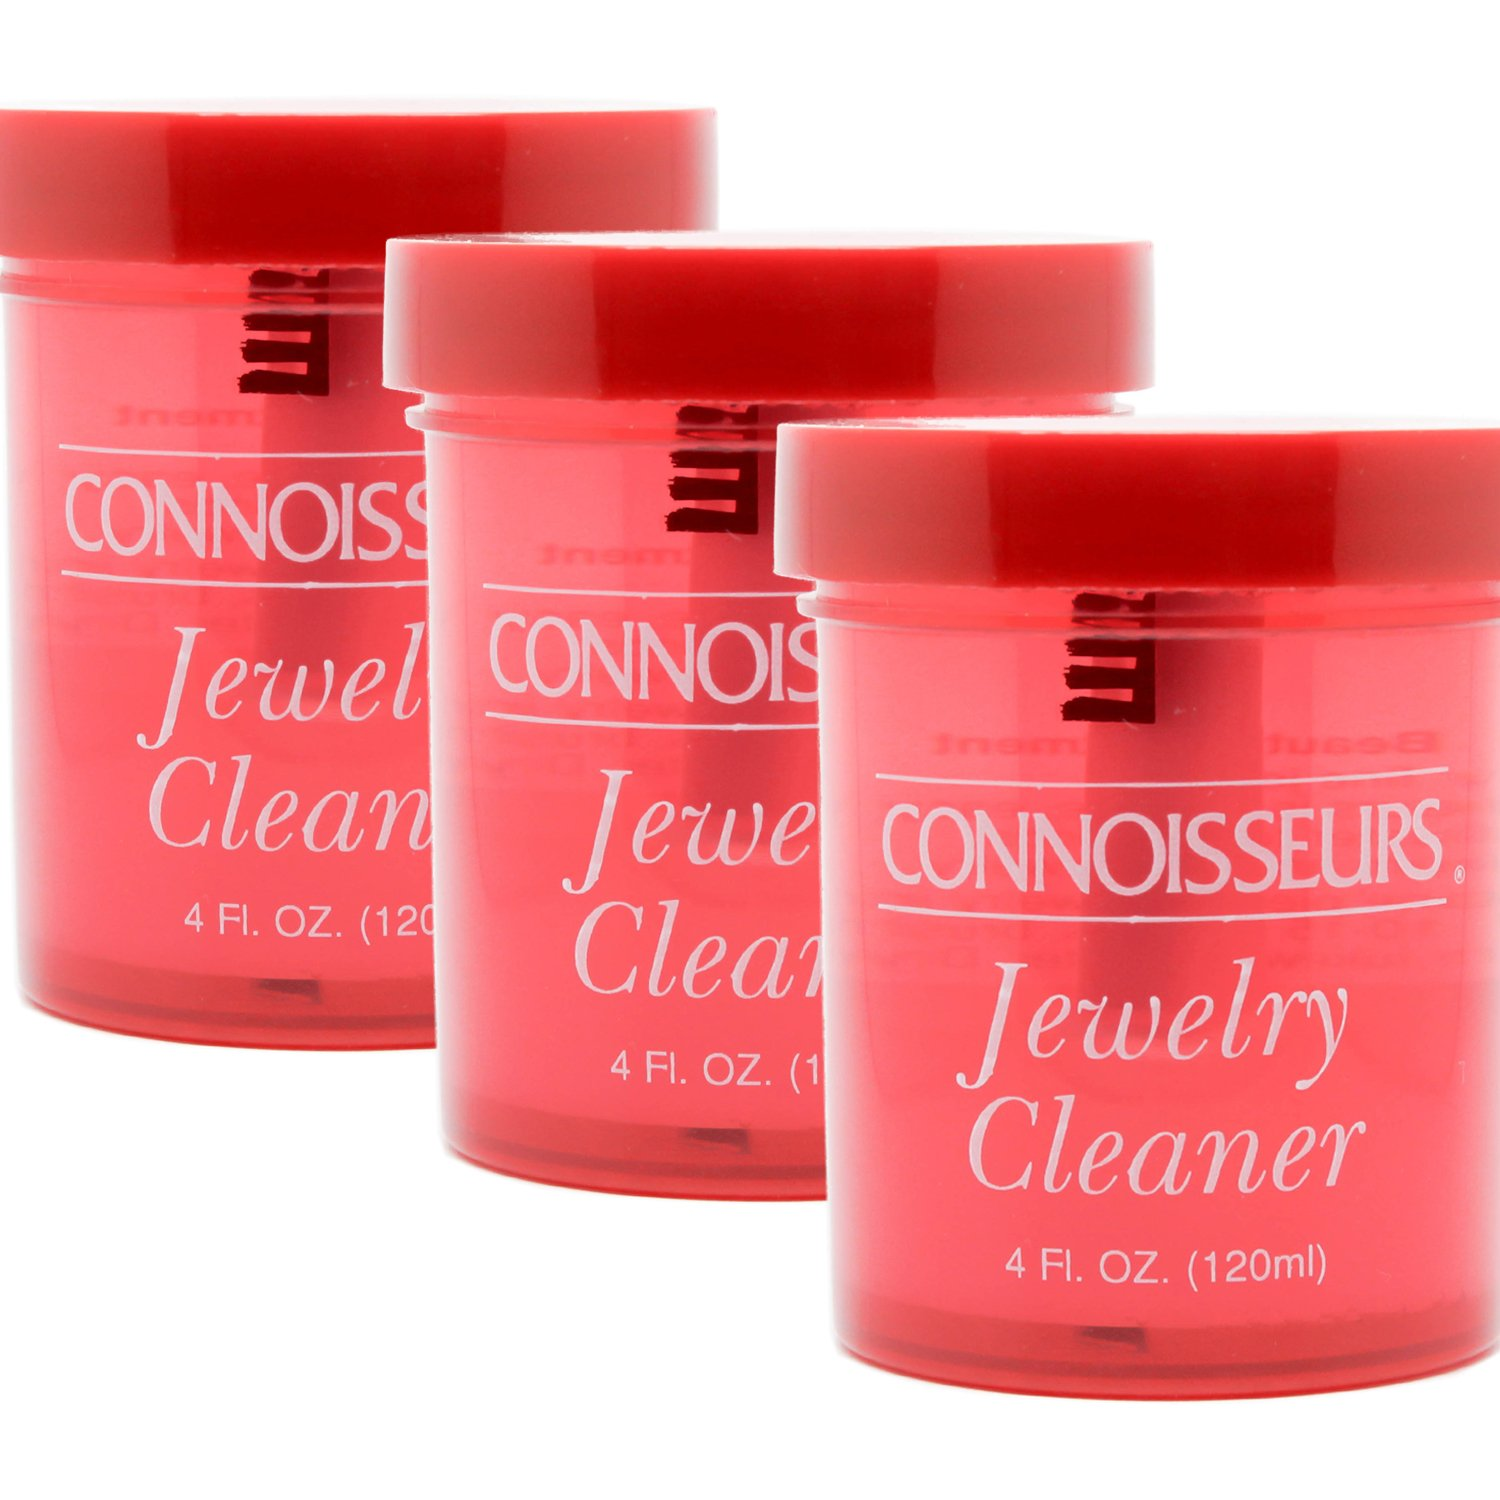 Fine Precious Jewelry and Gem Cleaner by Connoisseurs 4 fl.oz. (Pack of 3) by Connoisseurs (Image #1)